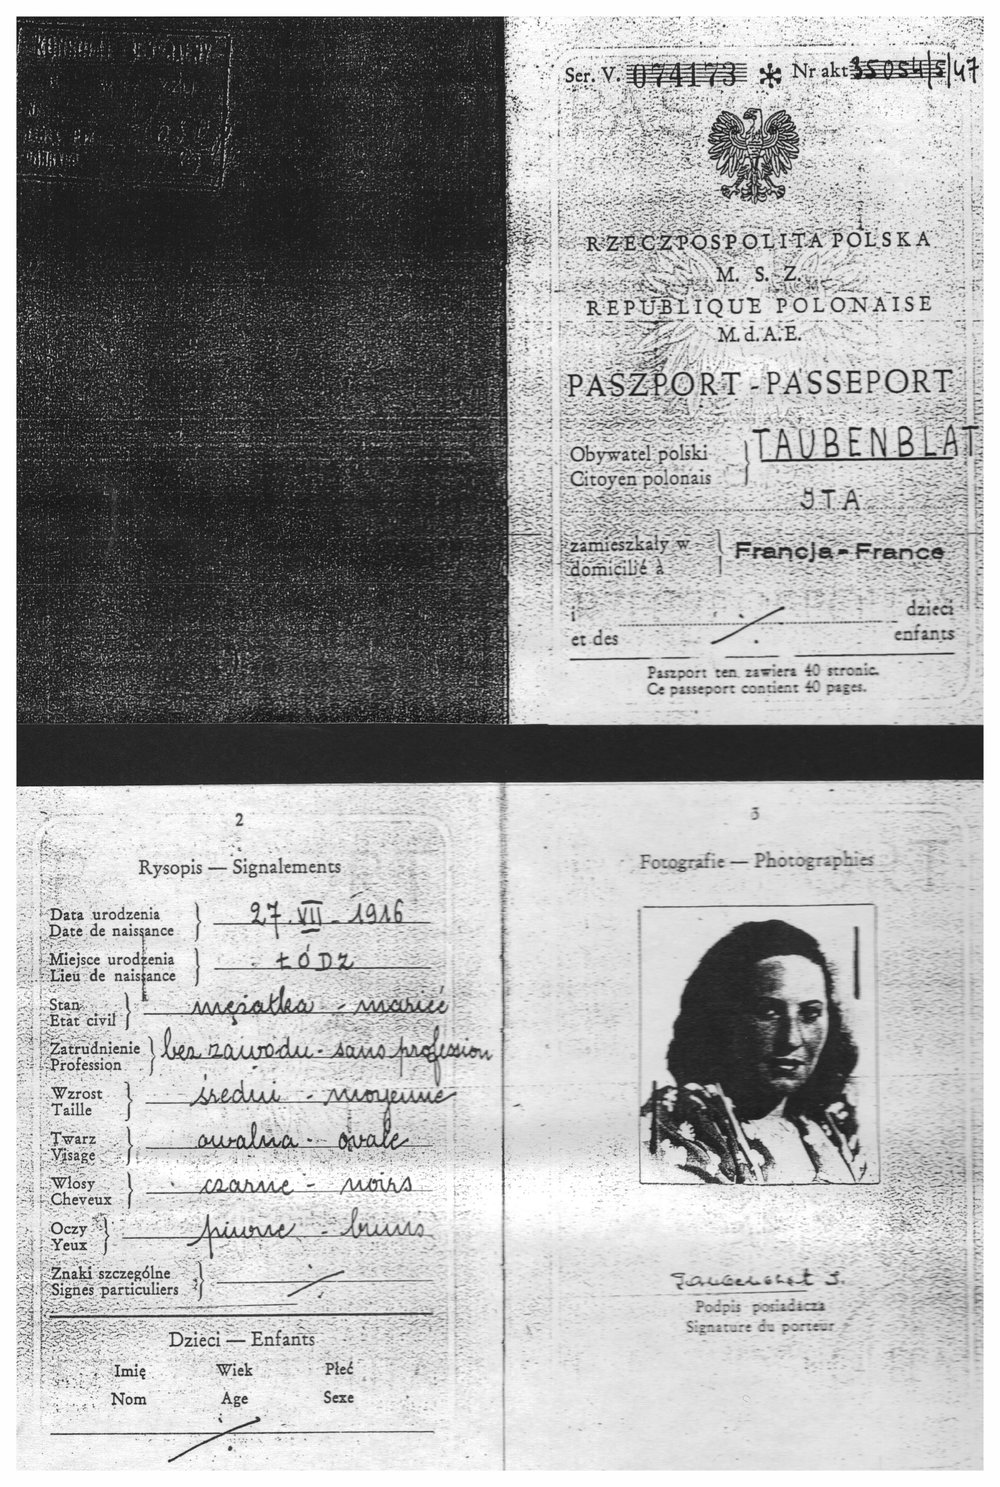 My mother's Polish Passport - Yta Taubenblat